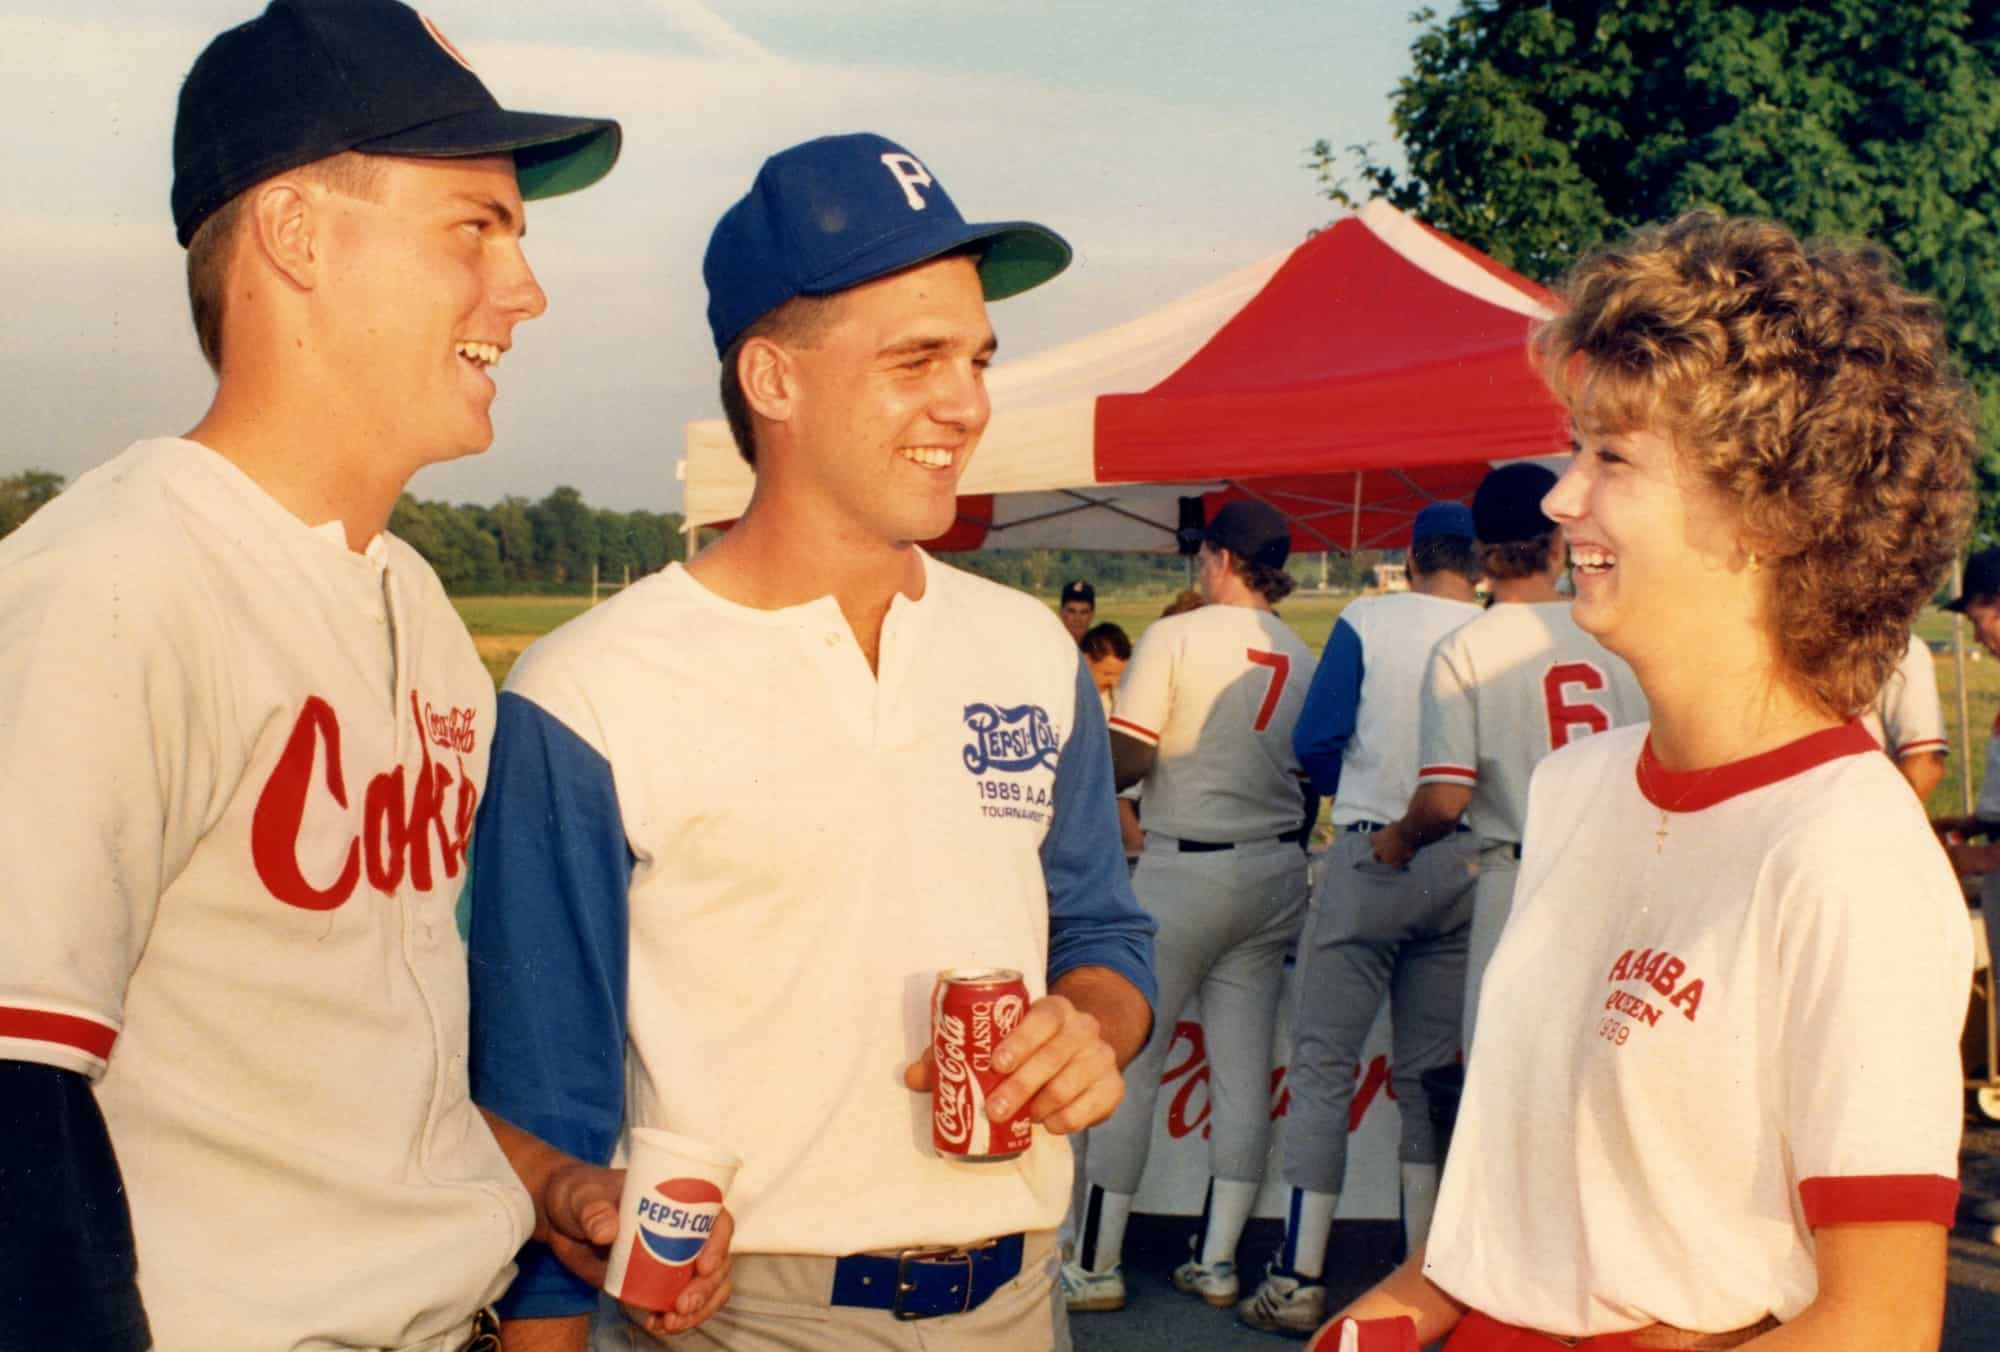 Coke and Pepsi represent Johnstown in 1989-1889 Flood Centennial AAABA Tourn